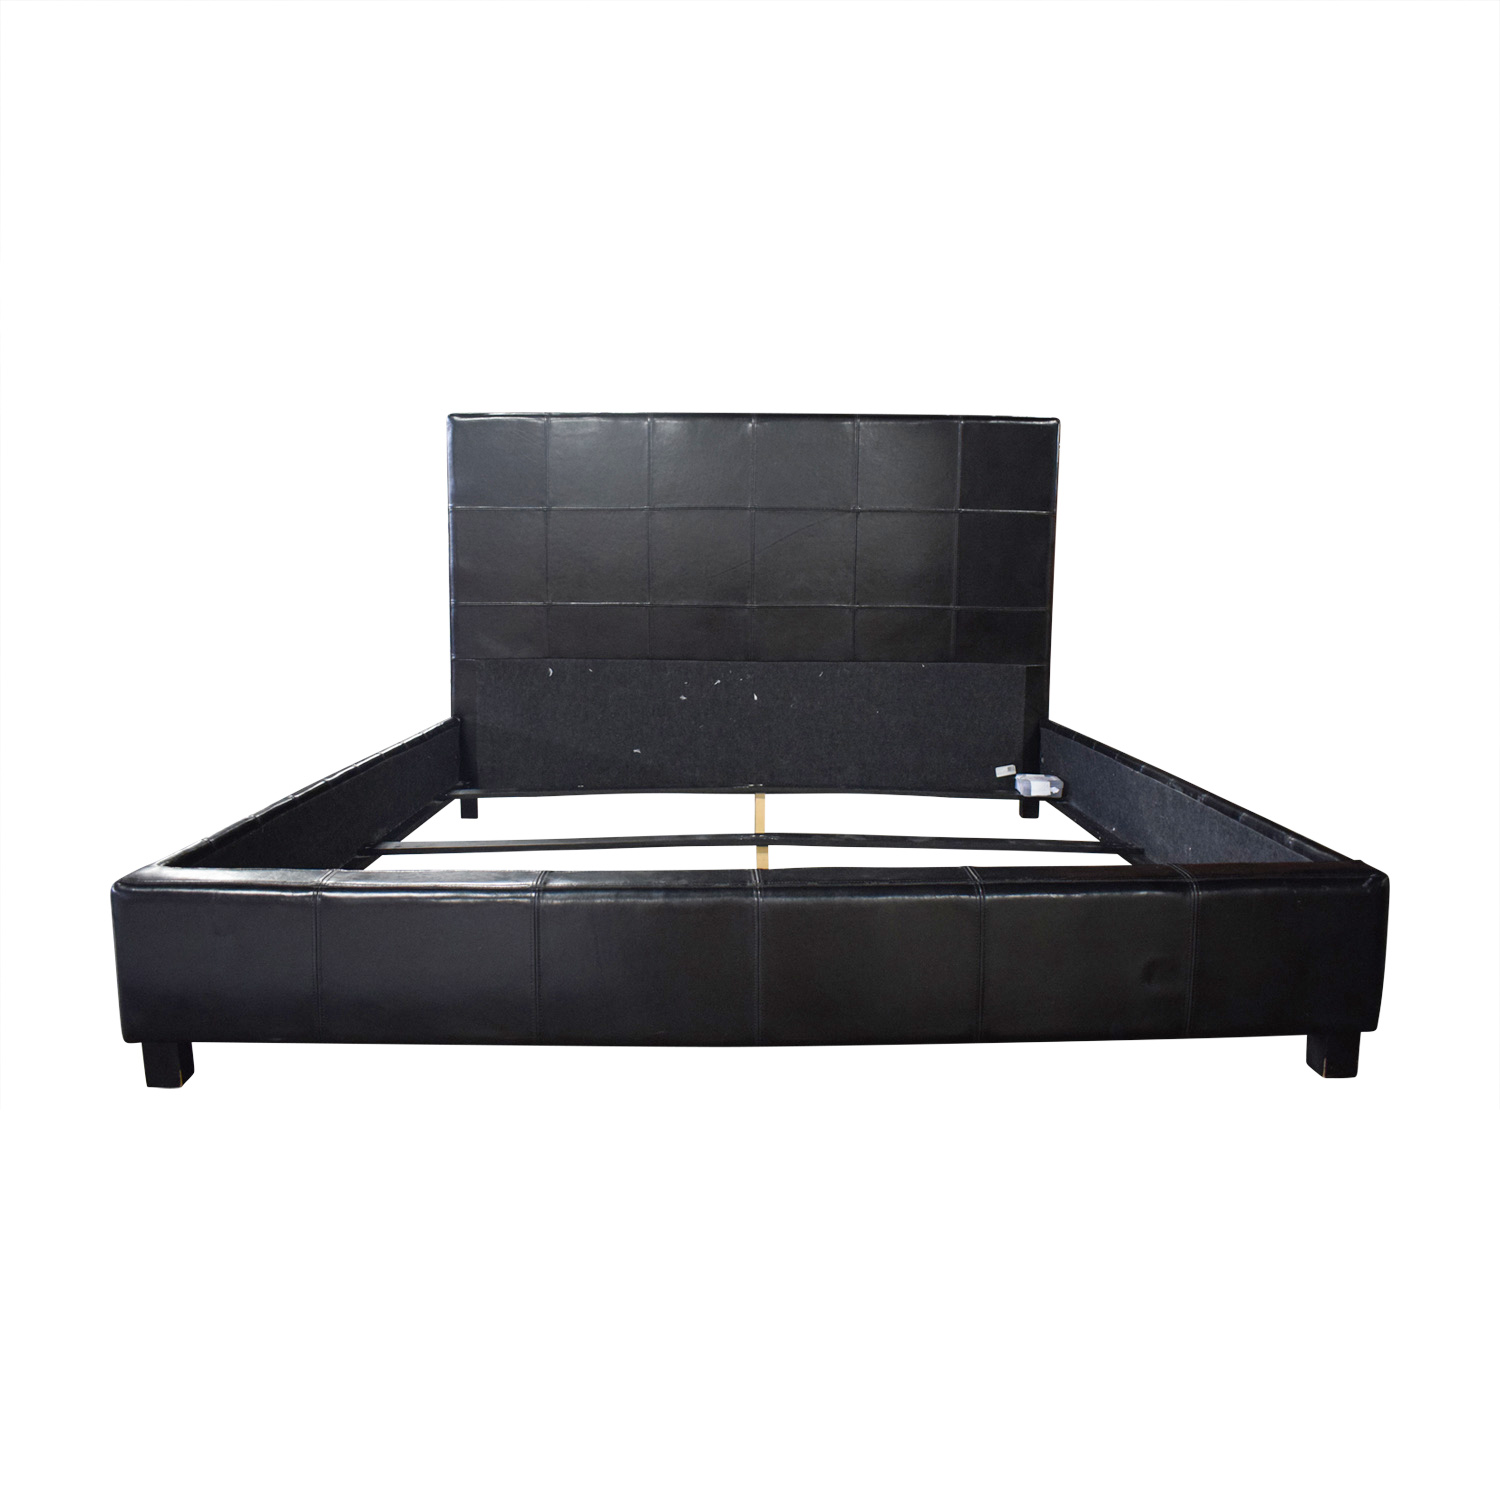 Macy's Macy's Ebony Leather King Bed nyc